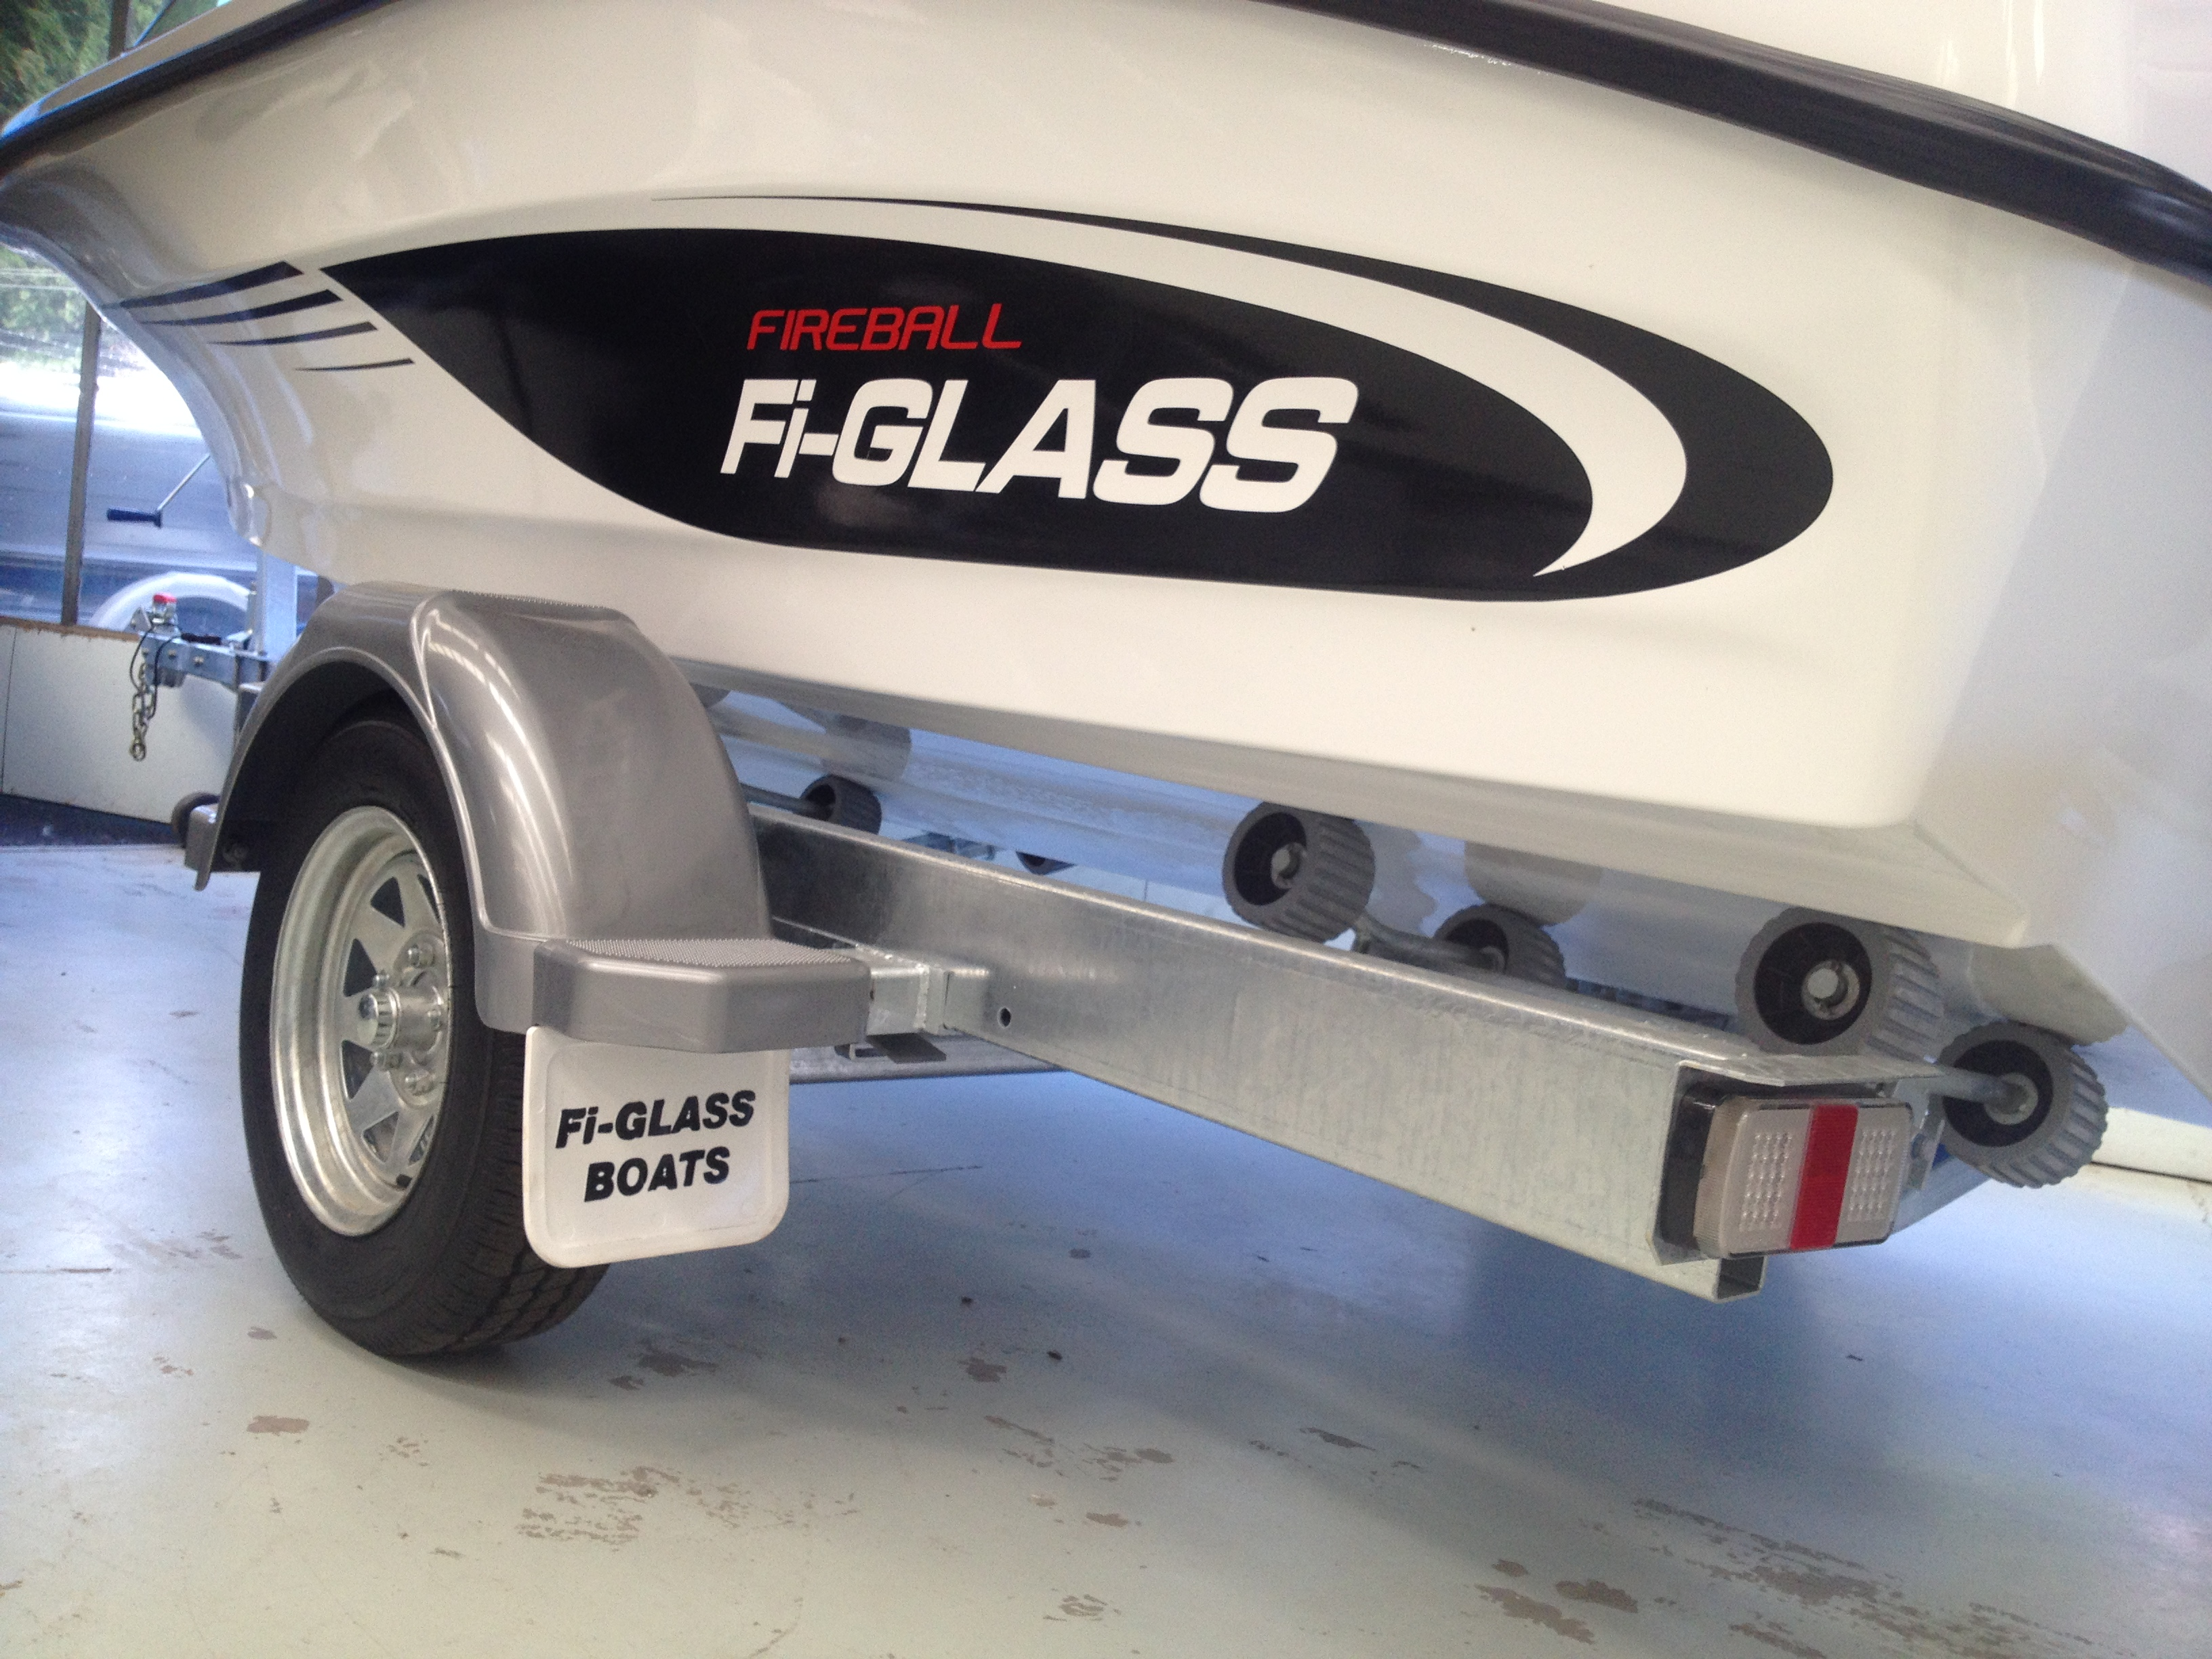 Fi-Glass 4.75m Trailer